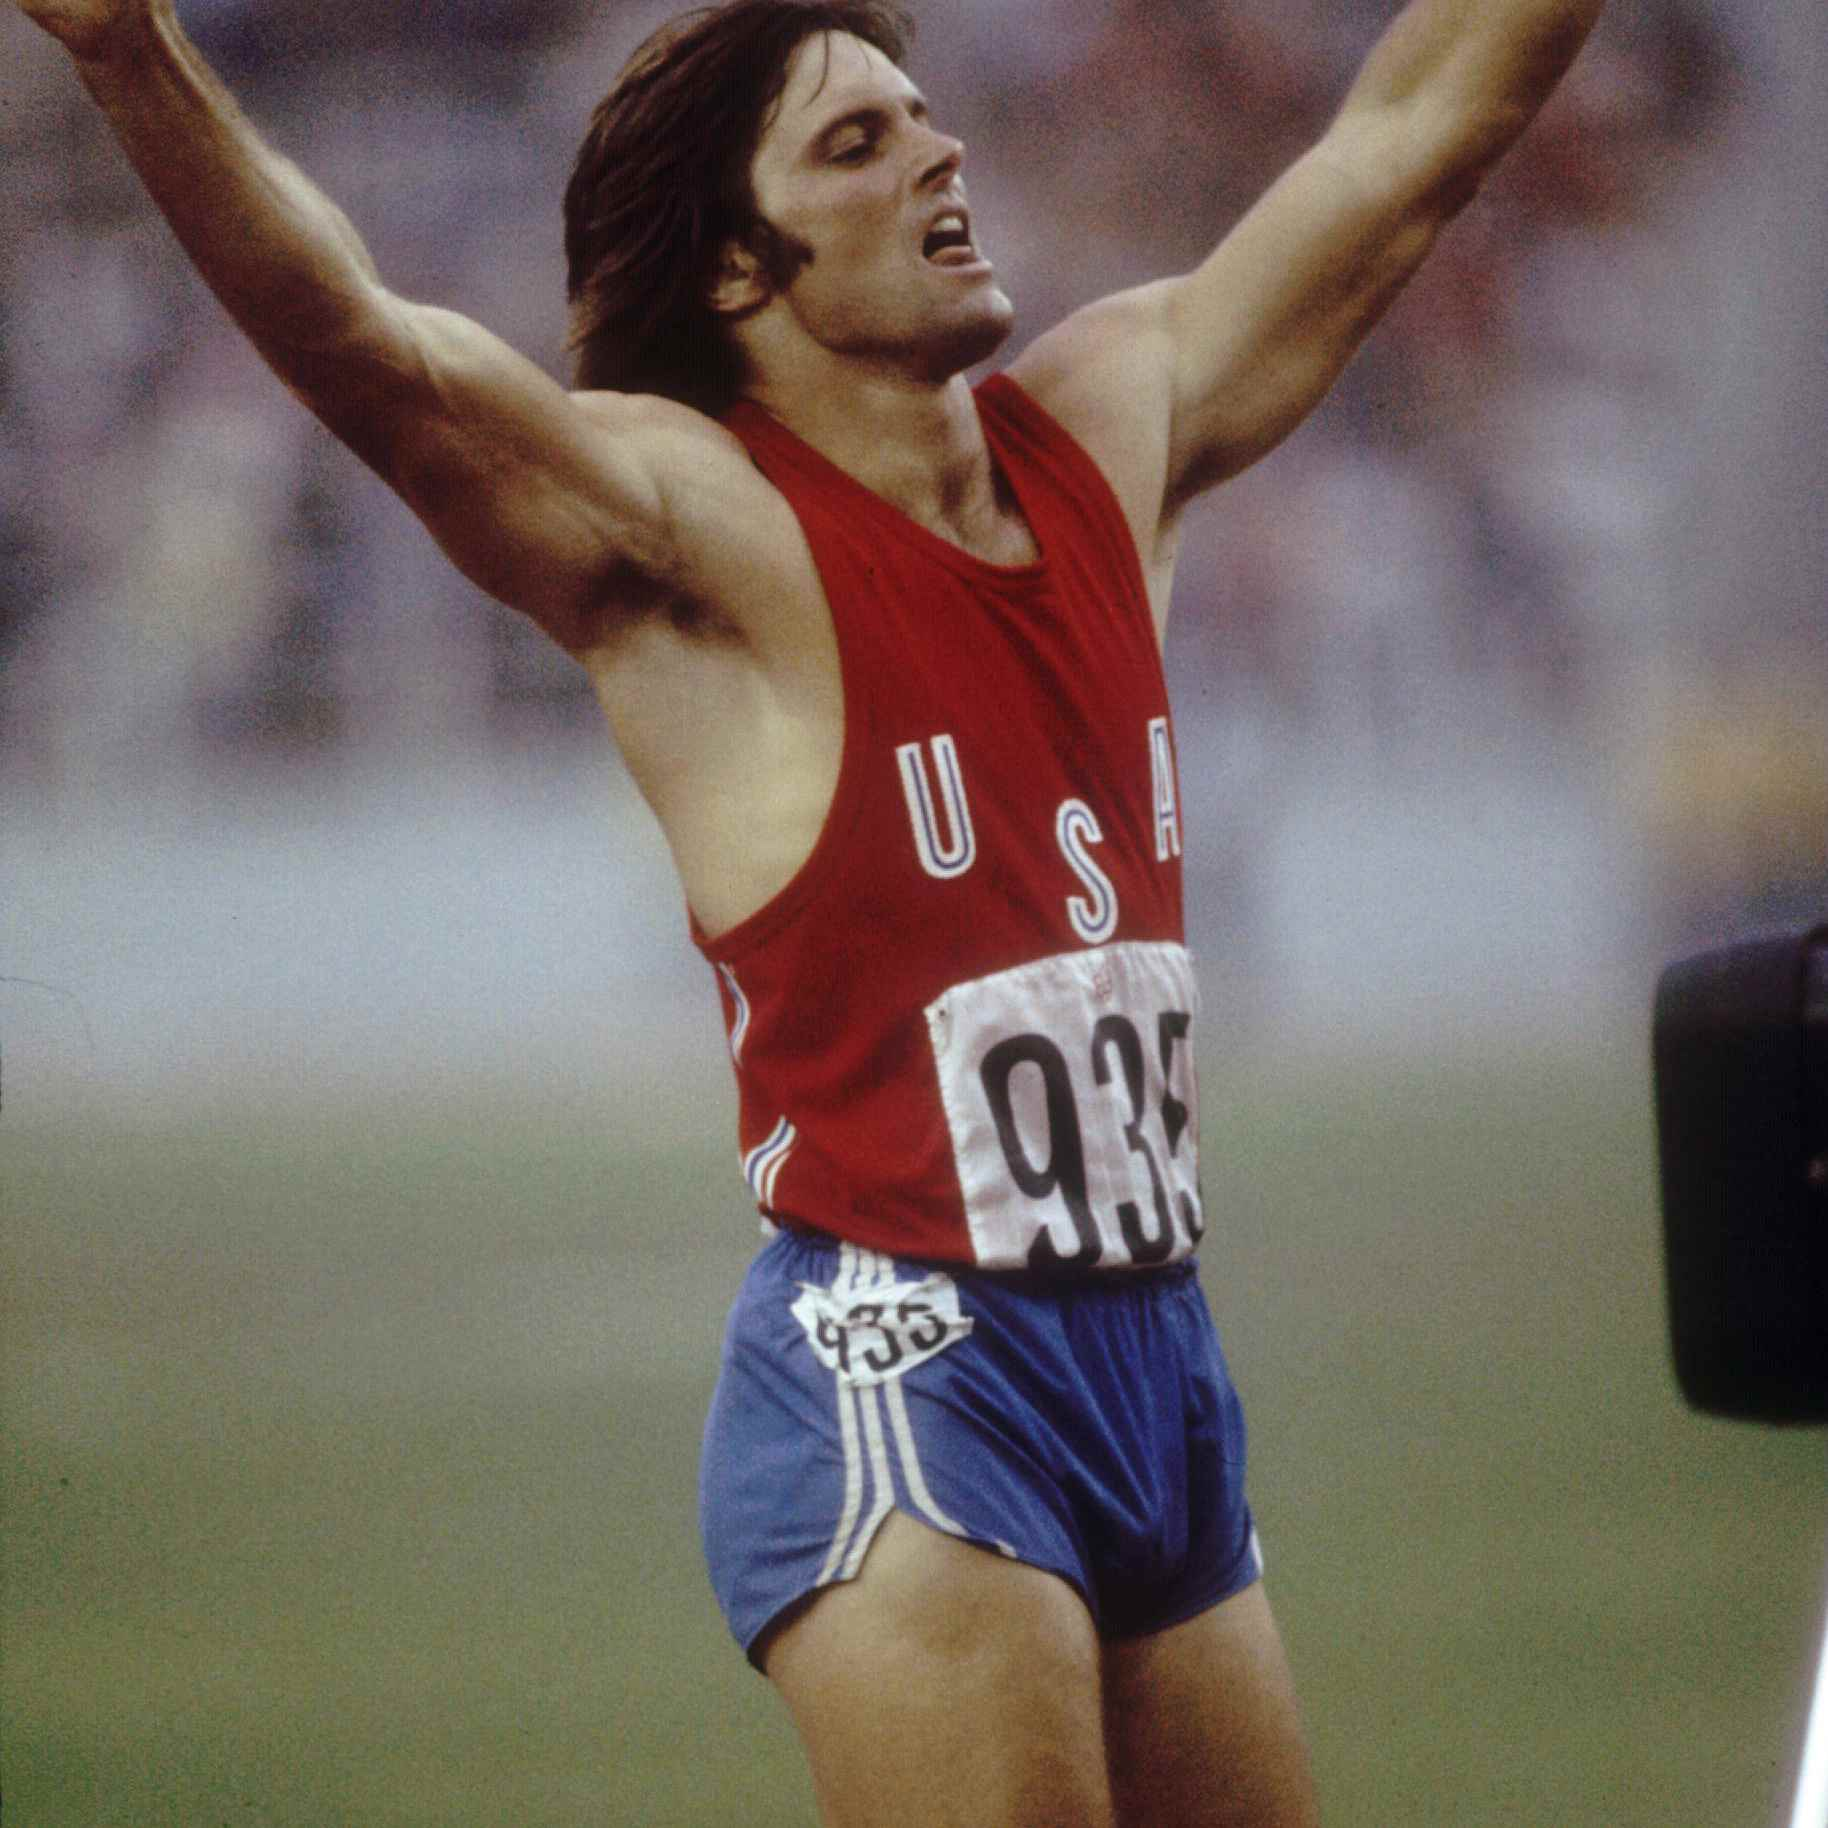 Bruce Jenner at the Olympics